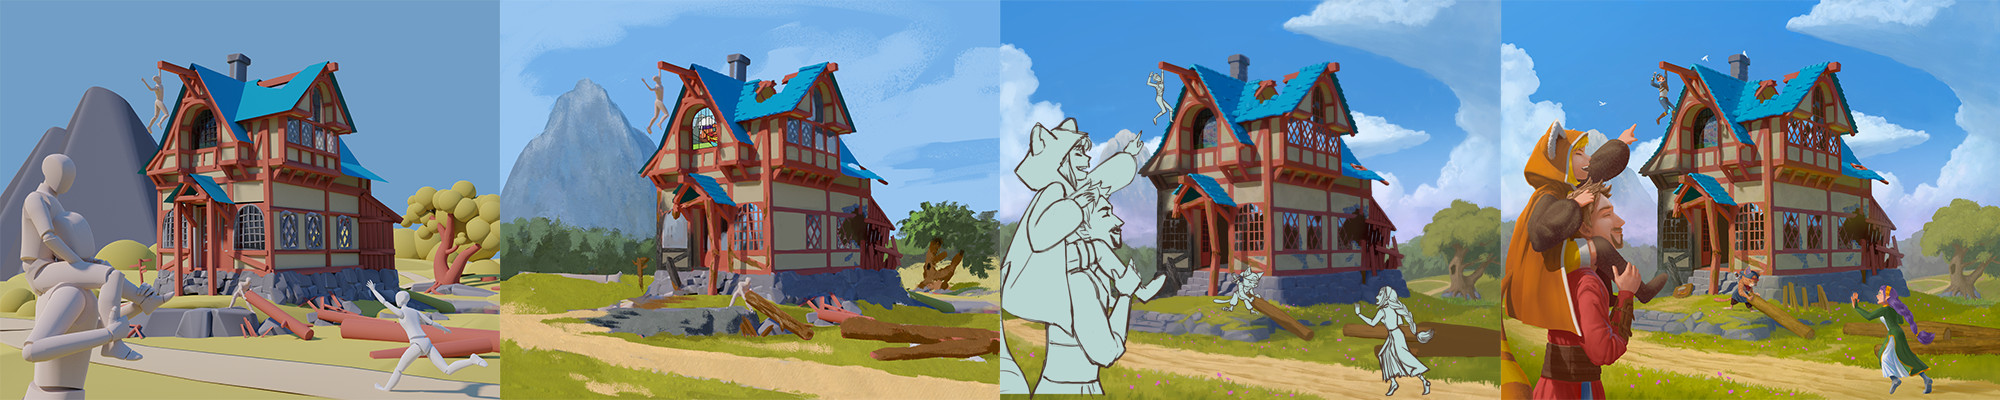 From Gravity Sketch to finished painting. Character line art by Koyo Do